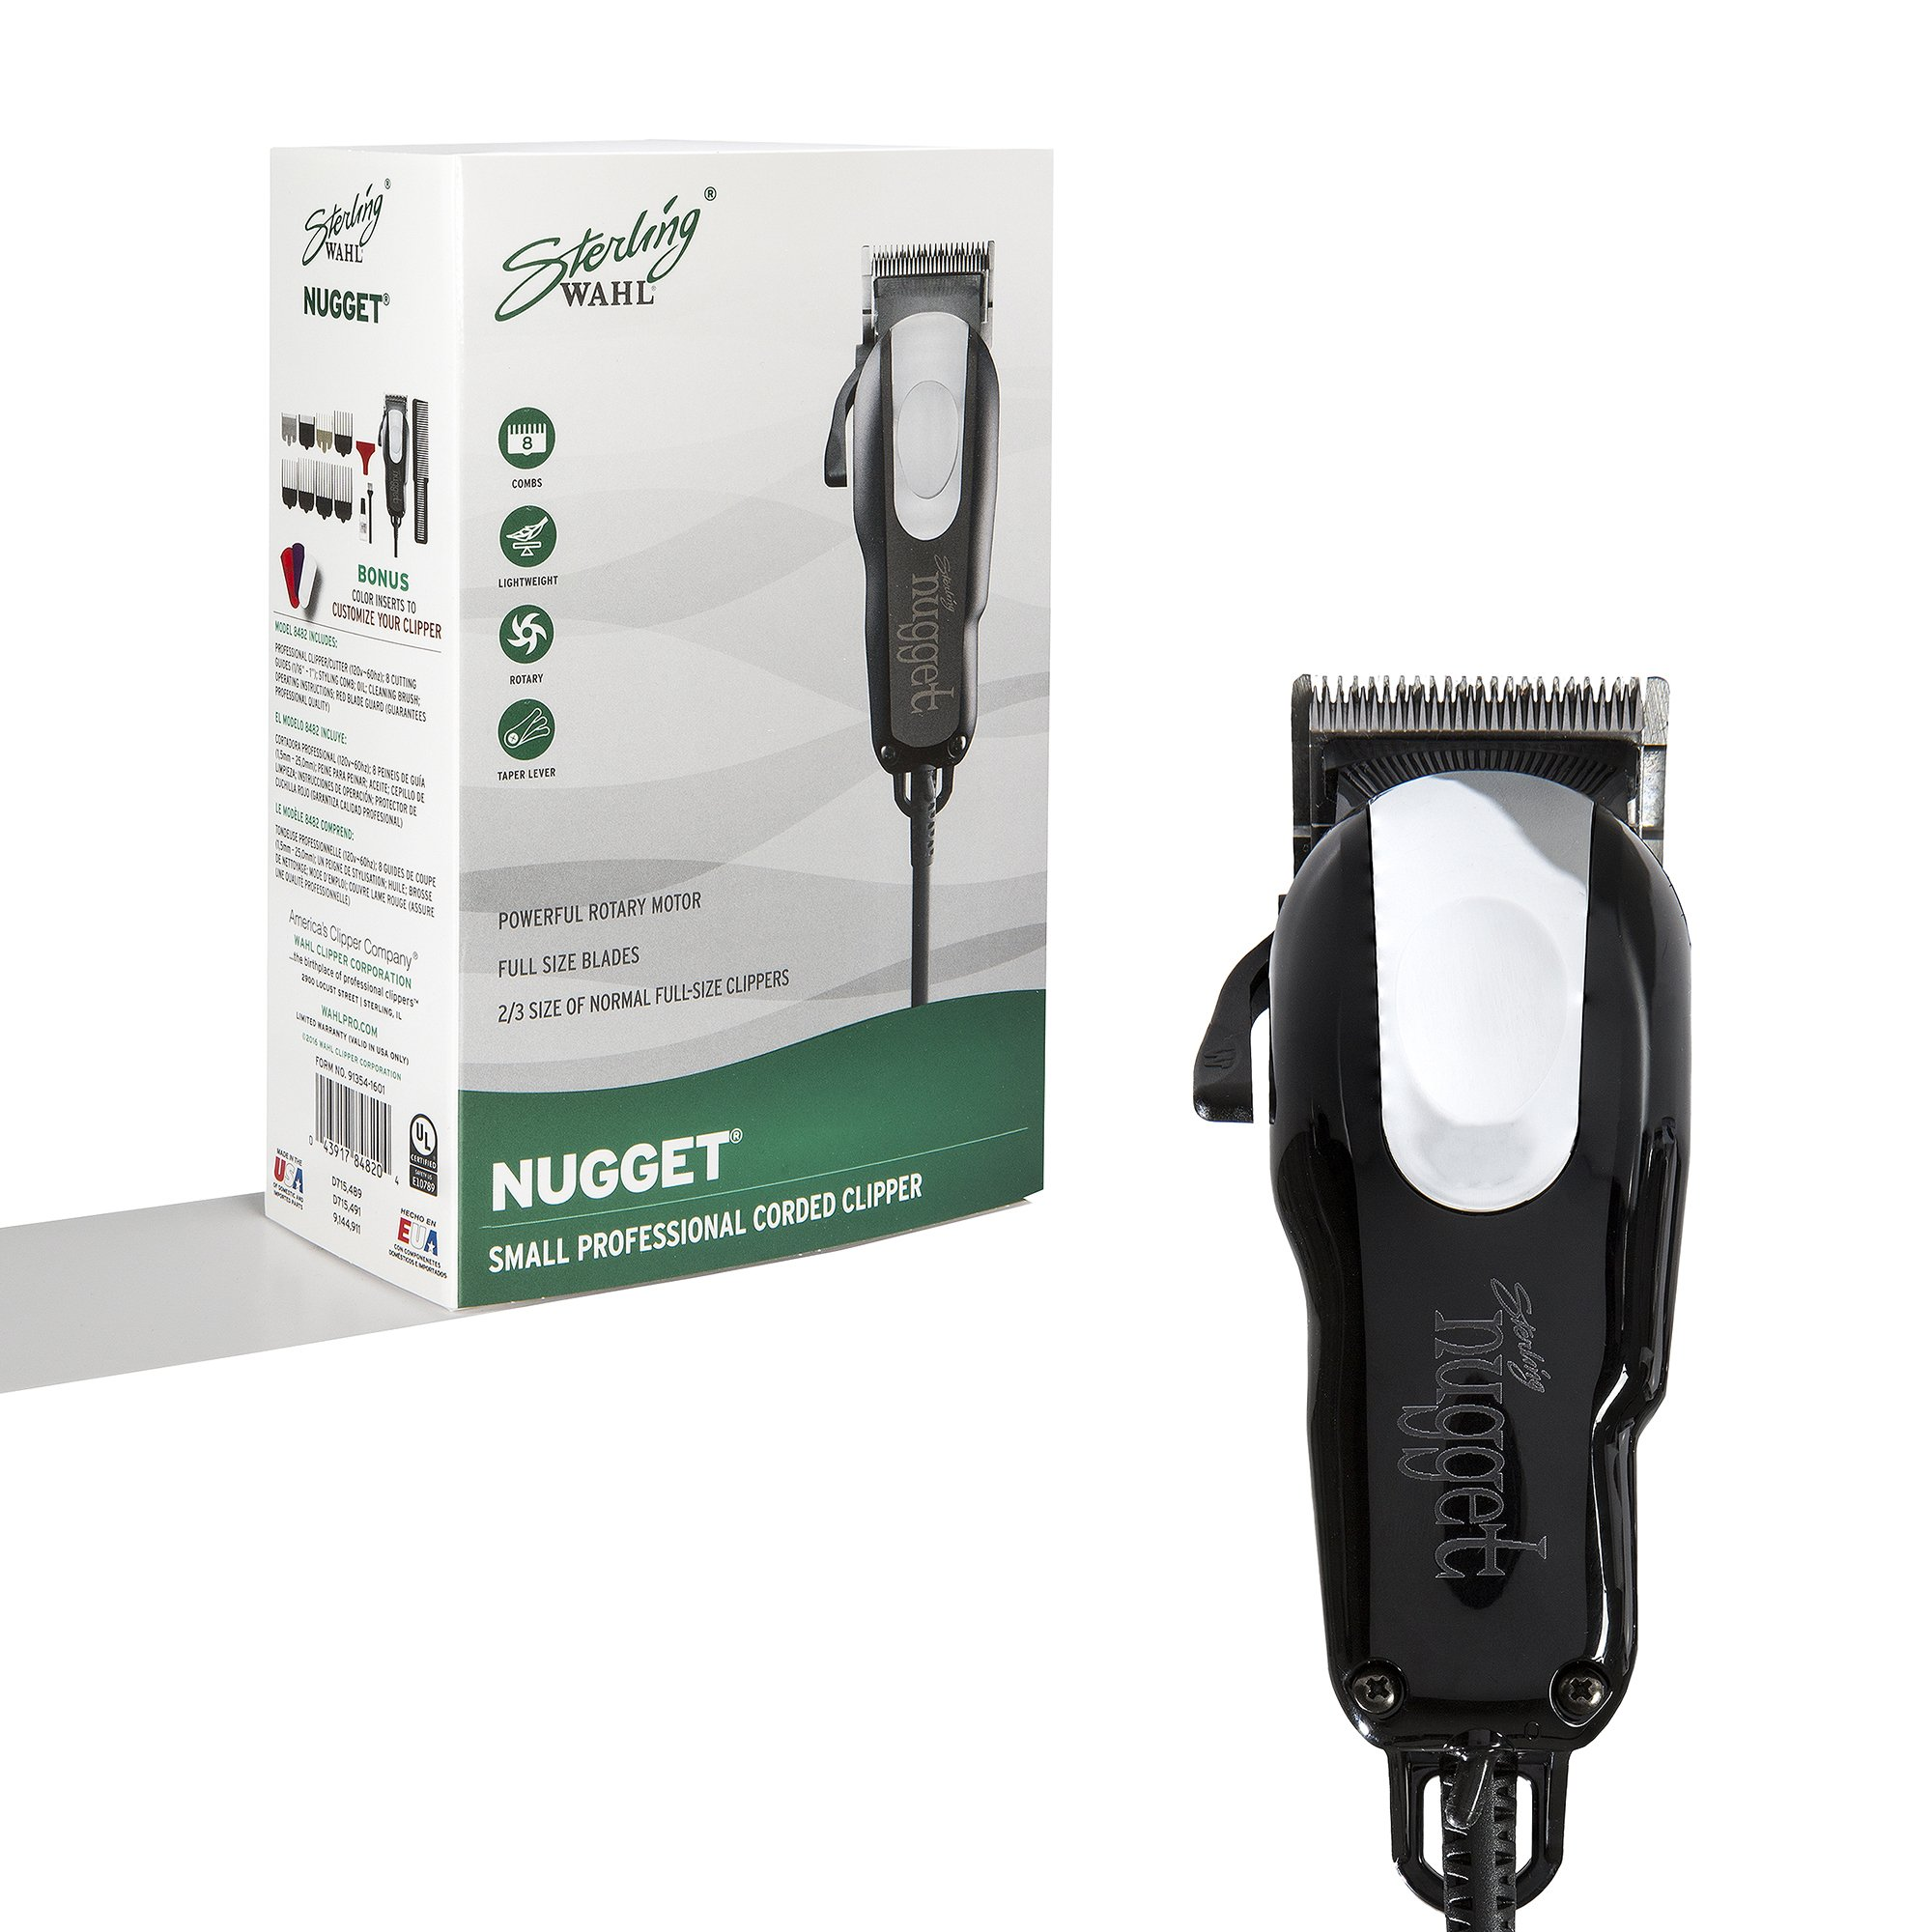 Wahl Professional Sterling Nugget Clipper #8482 – Great for Professional Stylists and Barber – Rotary Motor